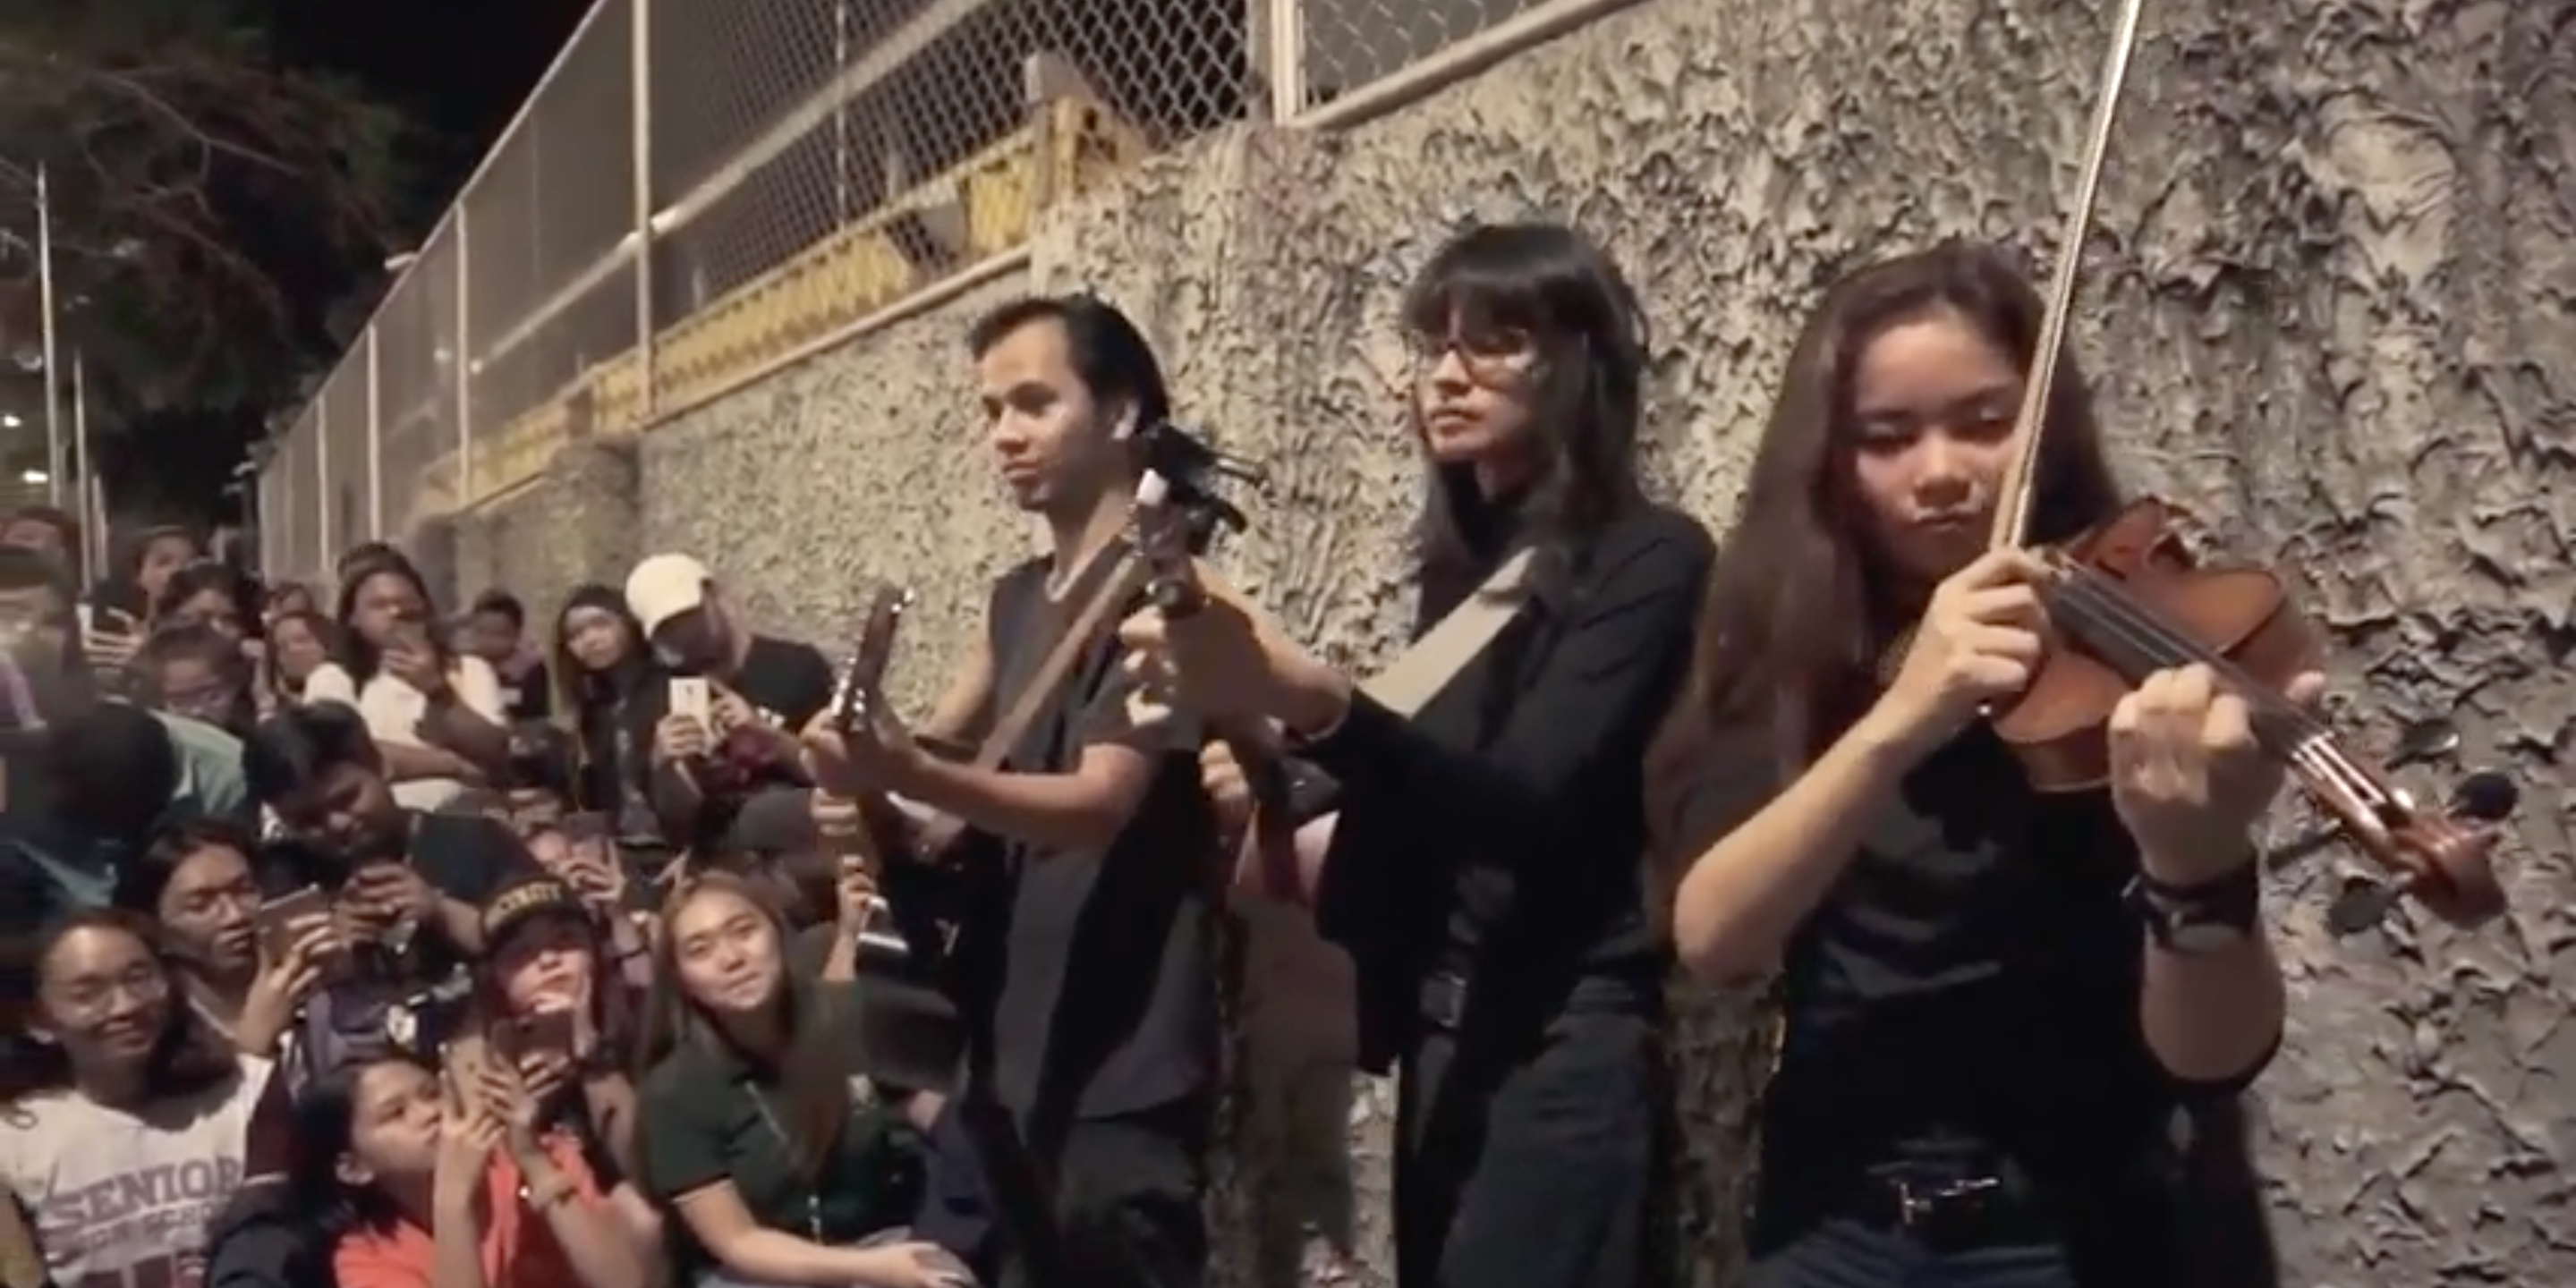 Unique surprises fans in busking gig with Martin Riggs  – watch